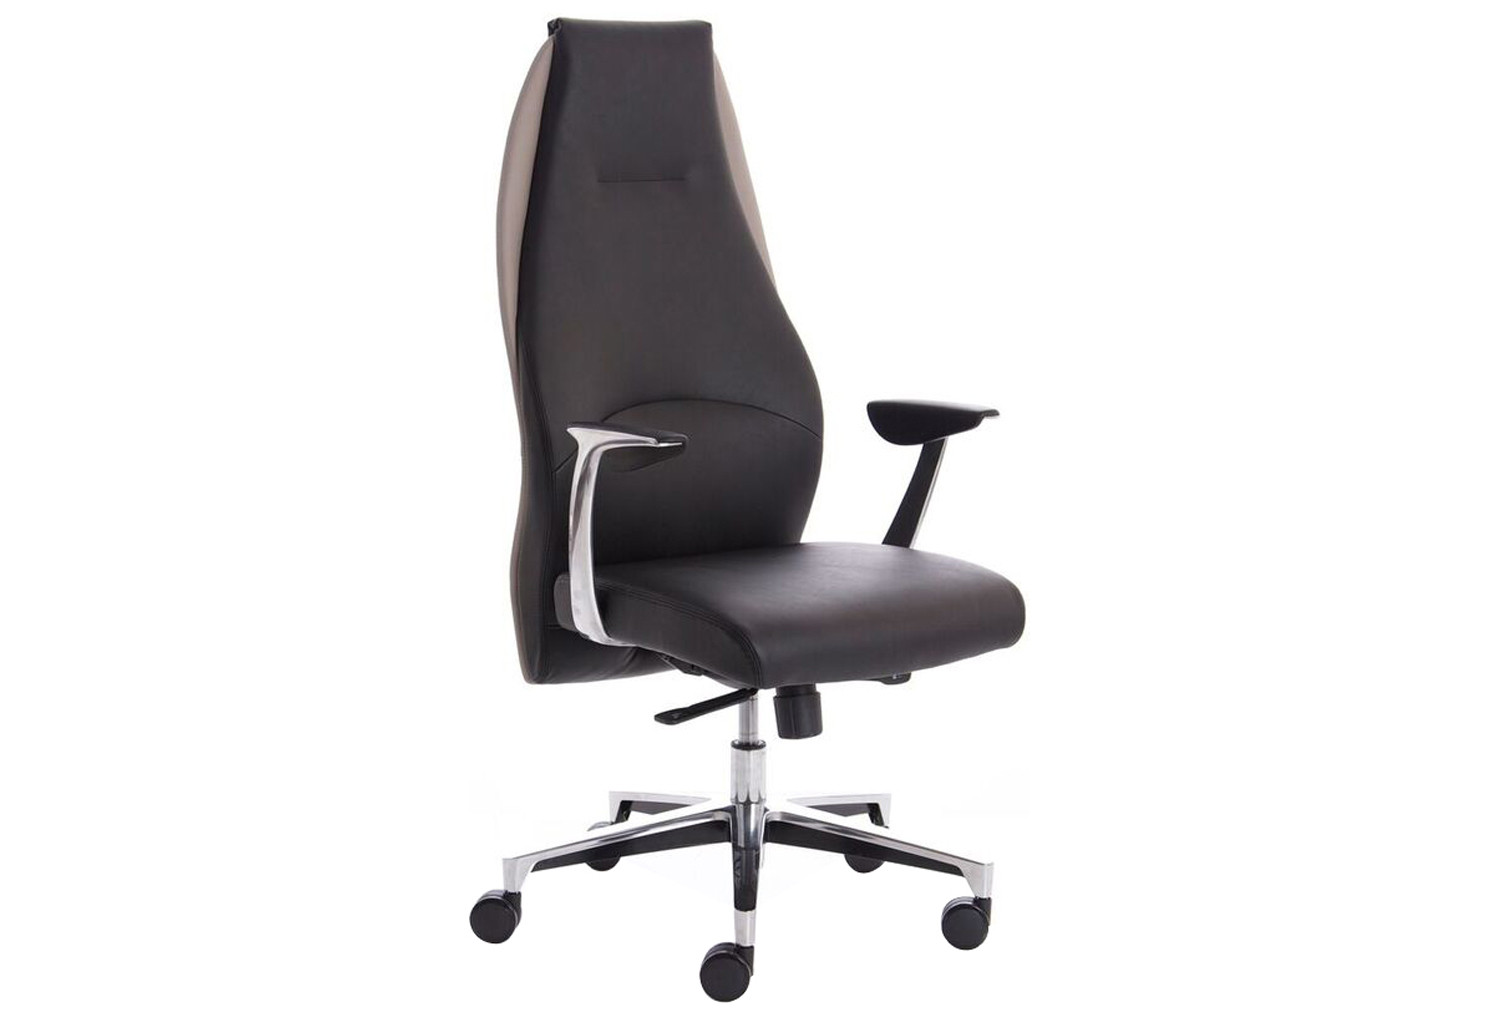 Sauda High Back Executive Chair Black/Mink